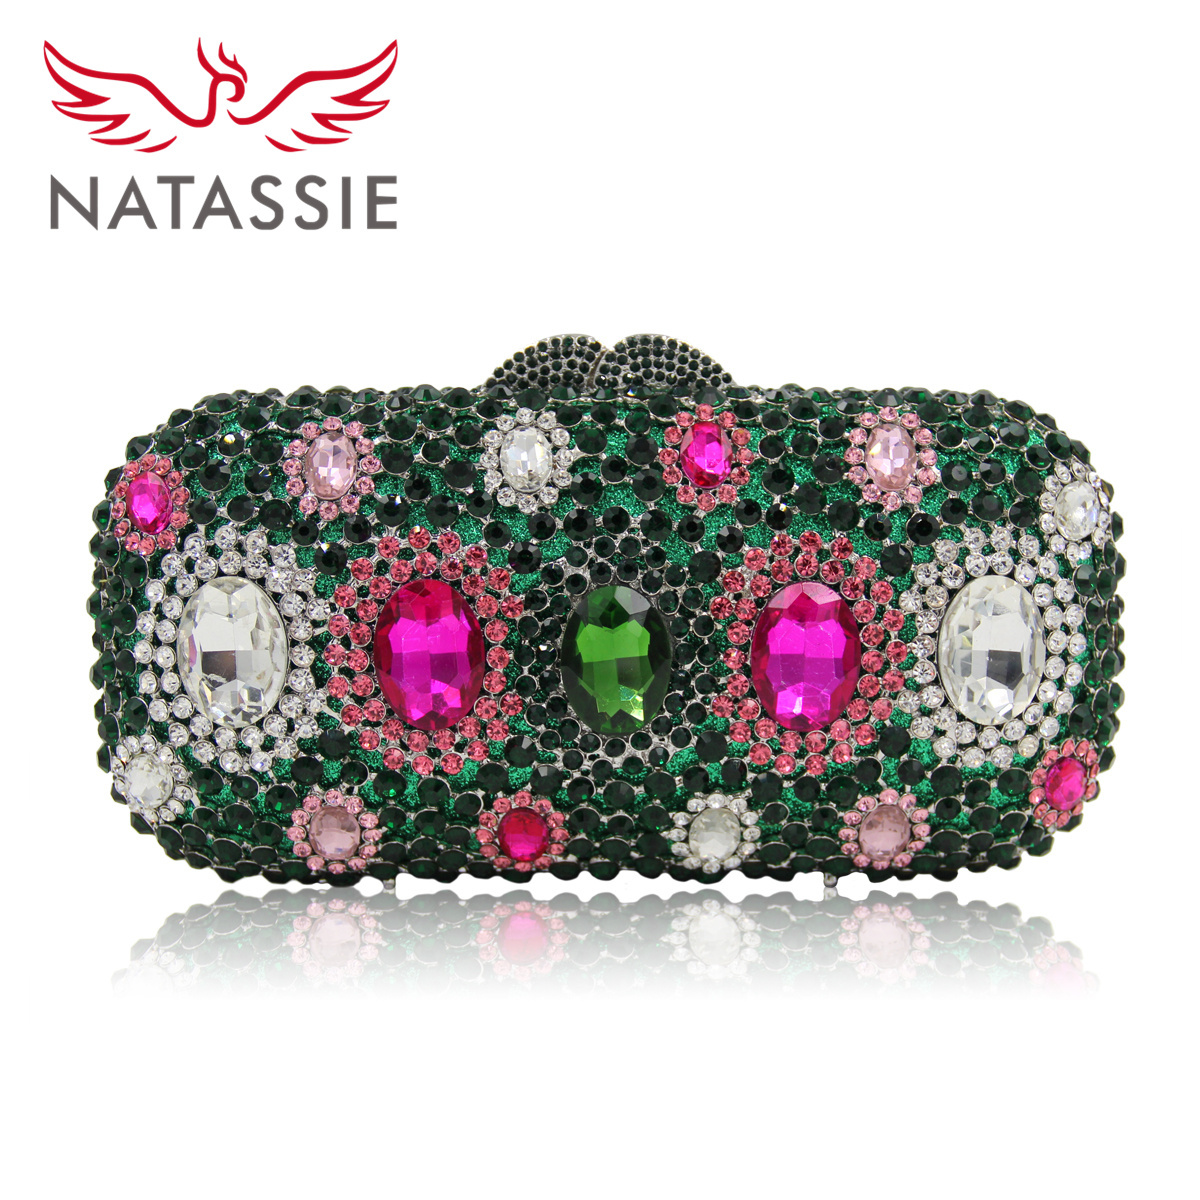 Natassie New Fashion Women Luxury Crystal Clutch Evening Bag Hollow Out of Roses Lady Dinner Party Handbag Wedding Purse women luxury rhinestone clutch evening handbag ladies crystal wedding purses dinner party bag gold